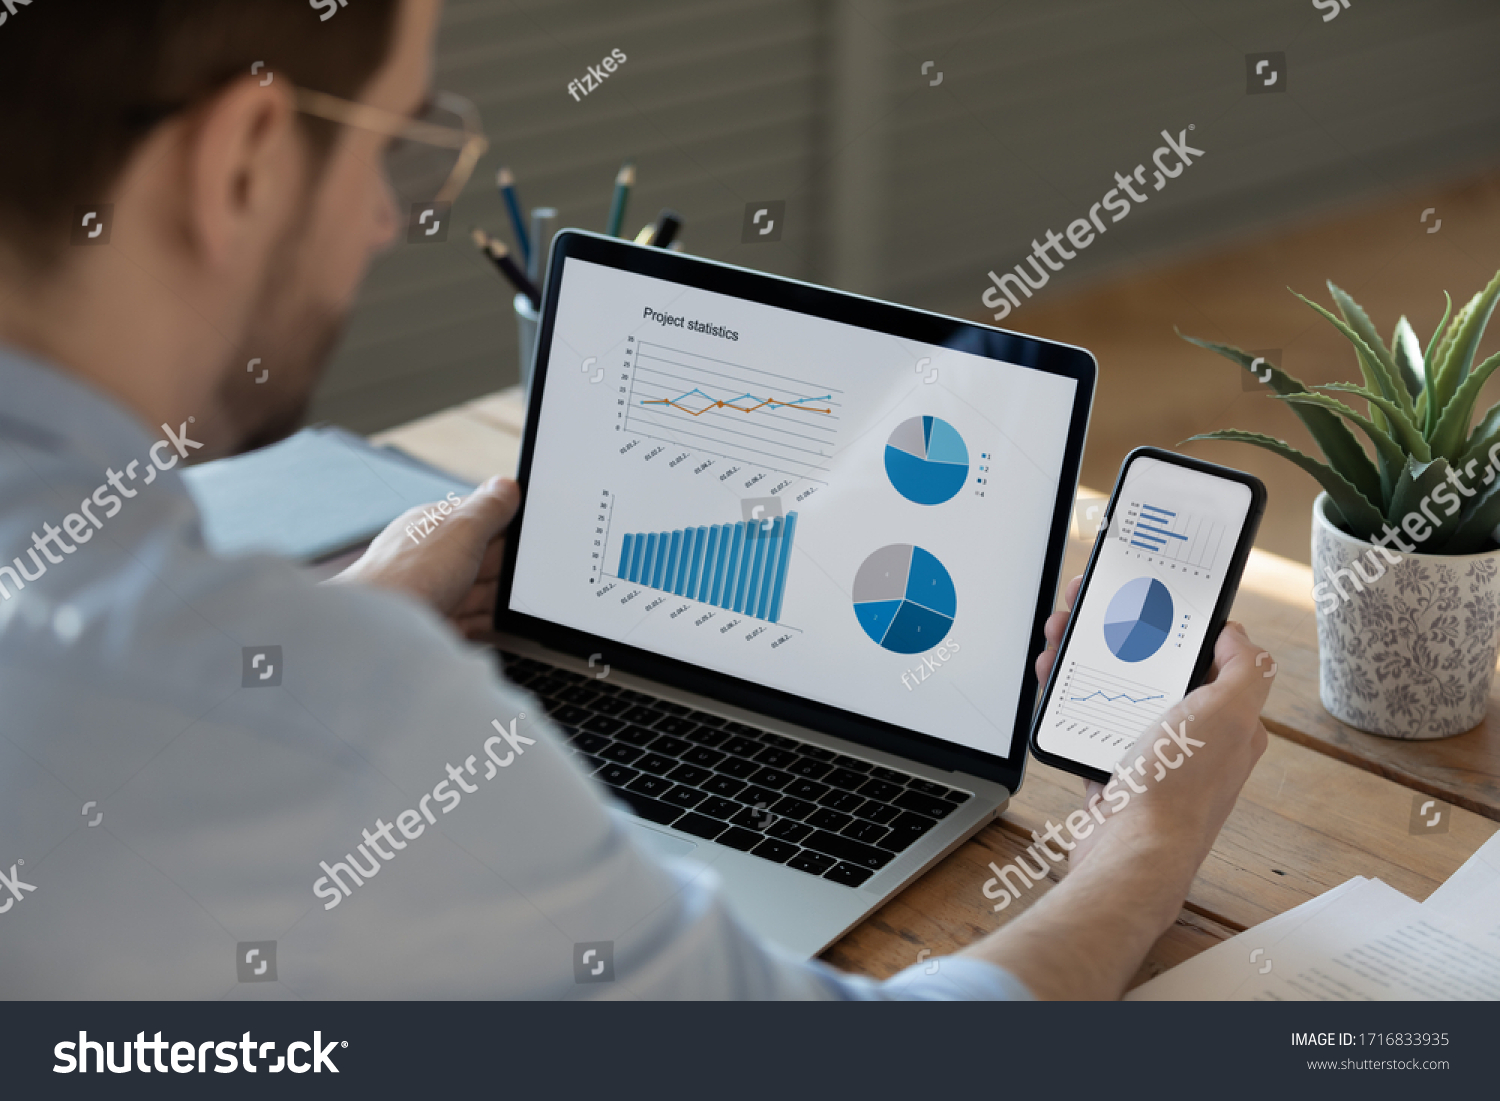 Close up businessman working with statistics, looking at laptop and phone screens with graphs and diagrams, synchronizing electronic devices, checking financial report presentation, sitting at desk #1716833935